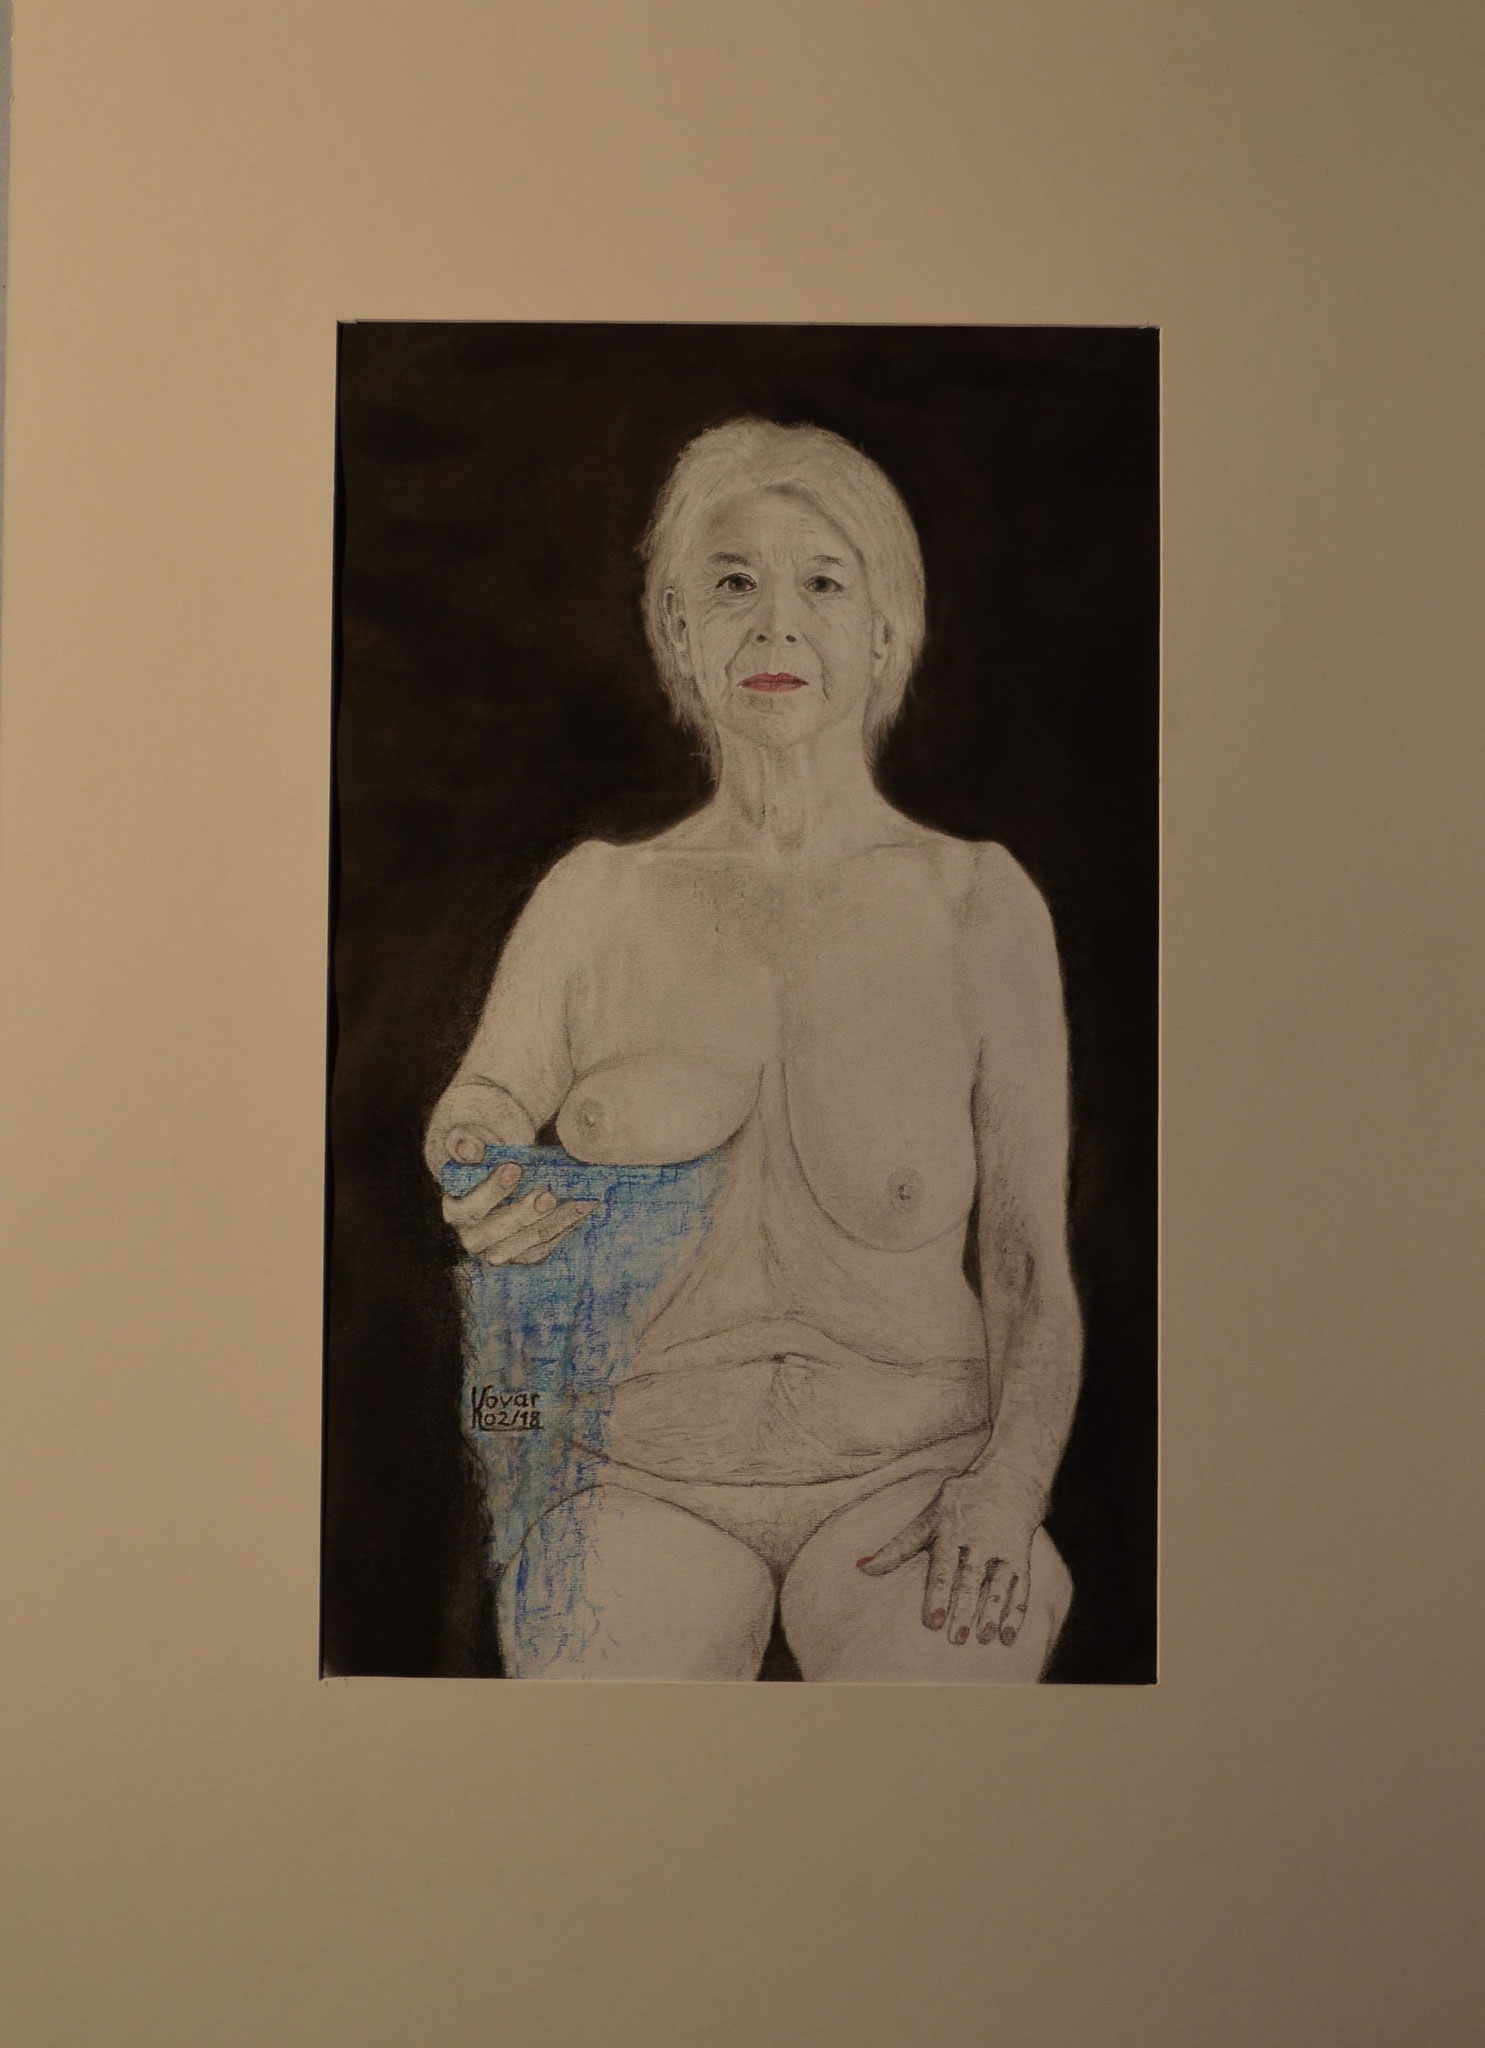 Schnittstelle:  Zeichenkohle und Pastell auf Papier,  52  x  72 cm, inkl. Rahmen.  Interface:  Charcoal and pastel on paper, inkluded Frames. 2018.